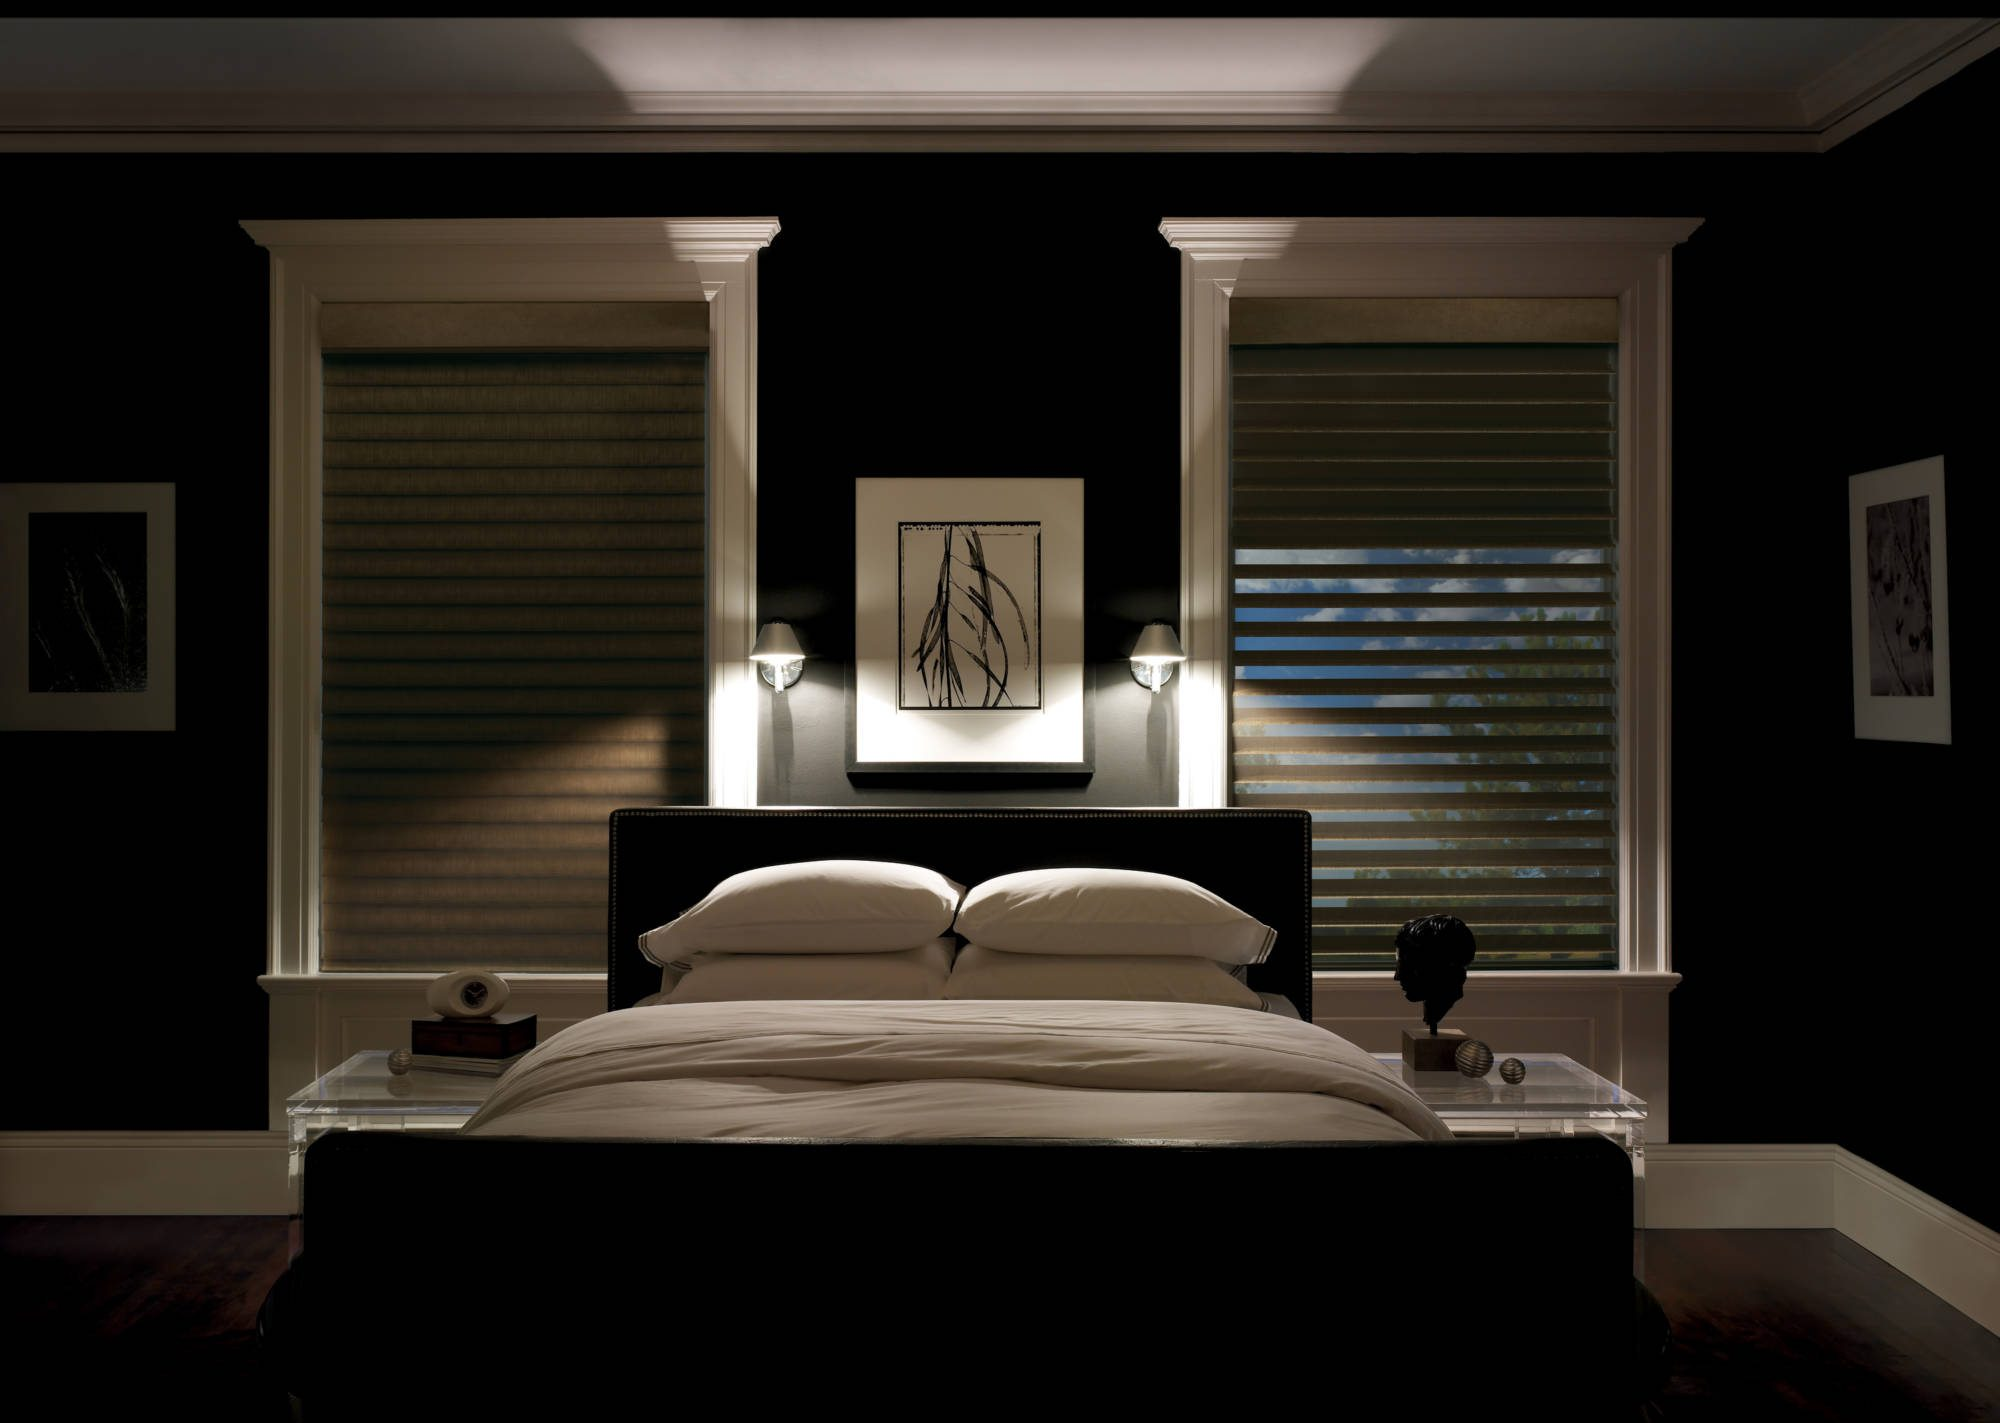 Bedroom with two windows and blackout shades